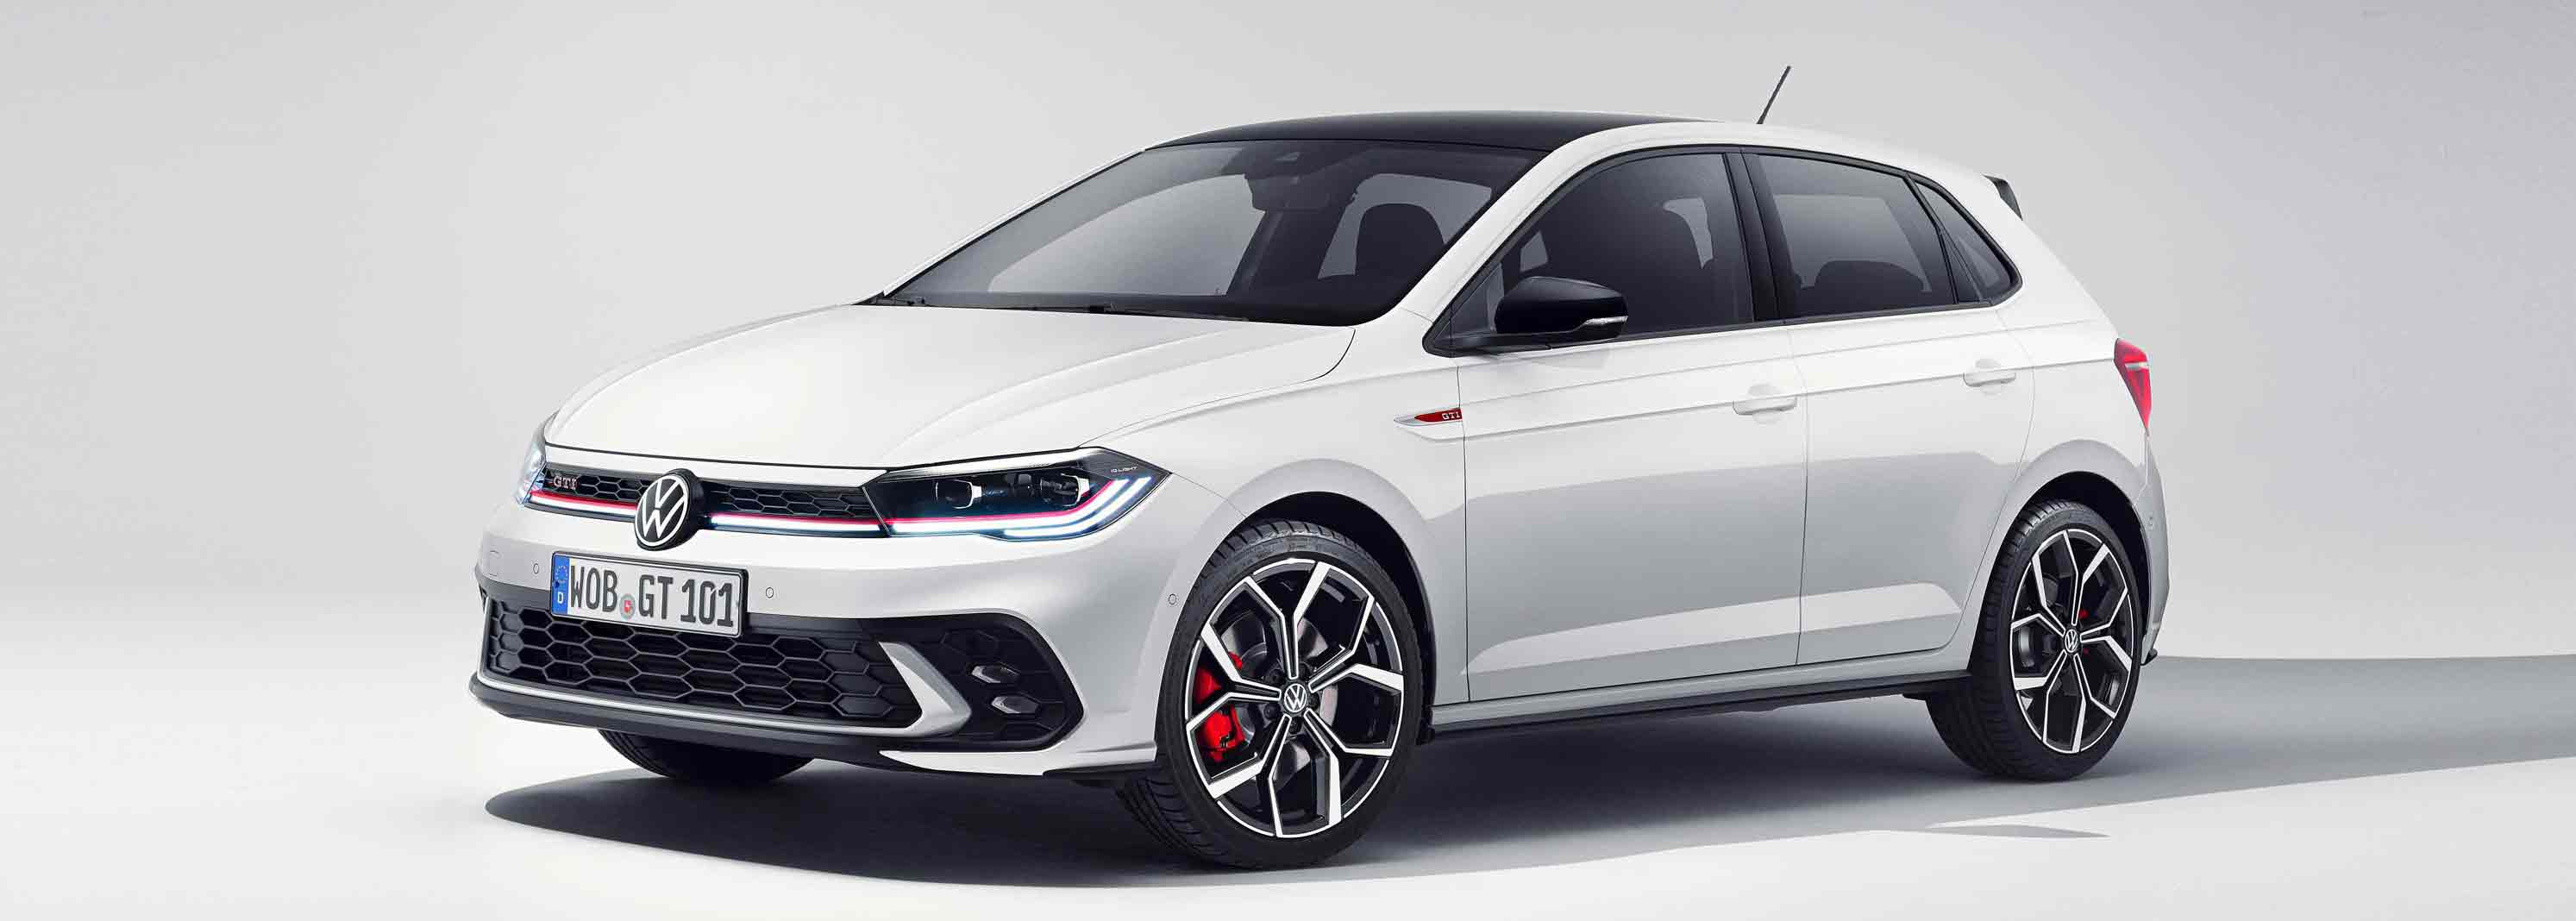 New Polo GTI makes global reveal